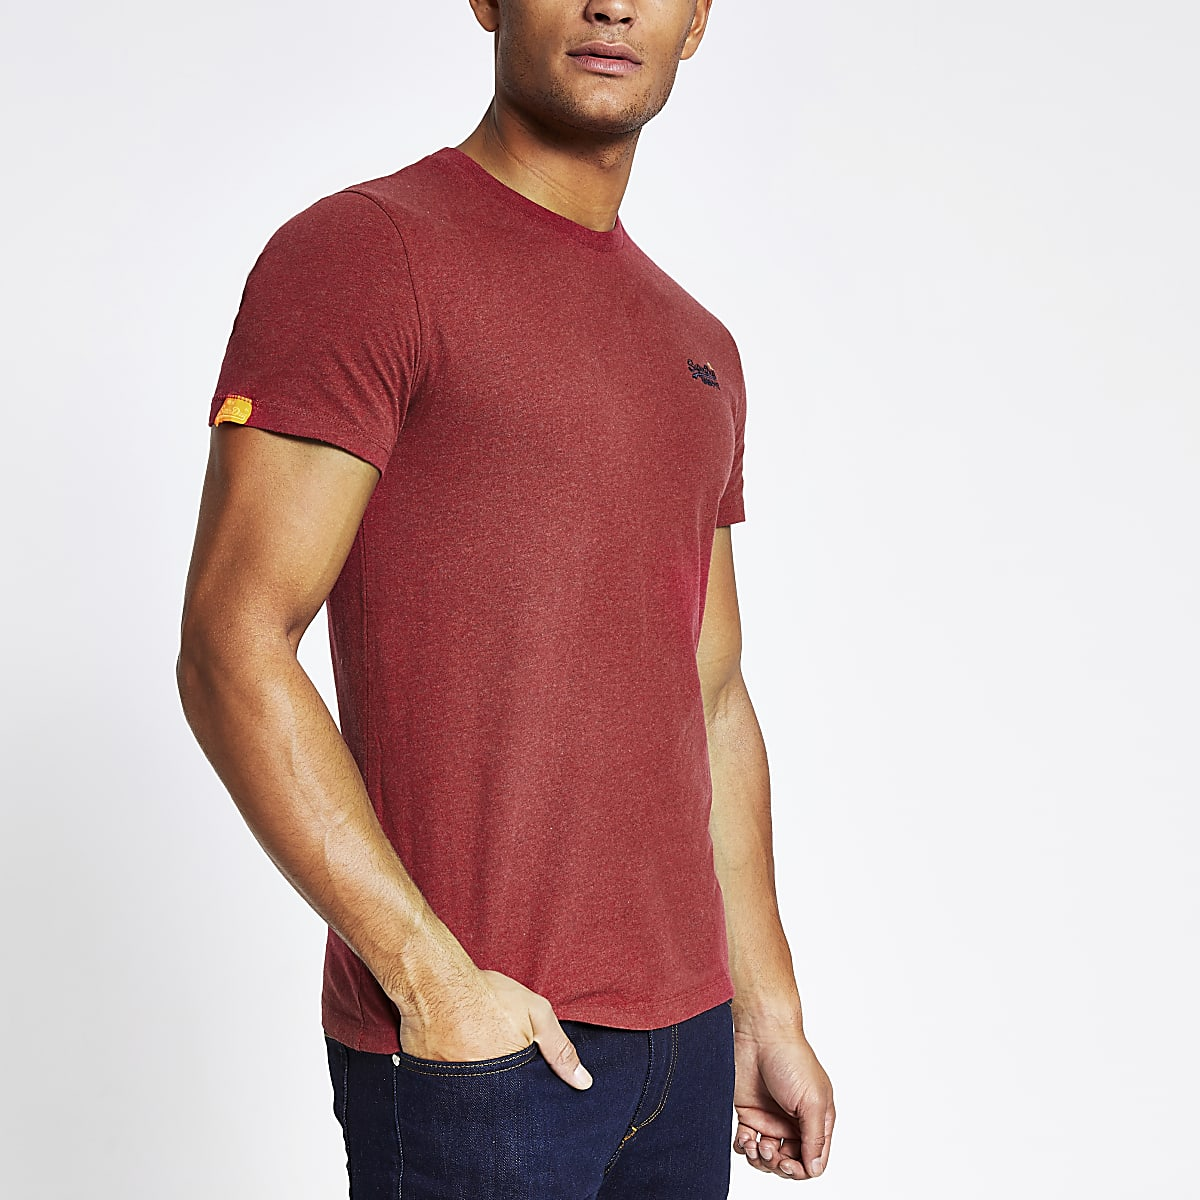 Superdry red chest logo short sleeve T-shirt